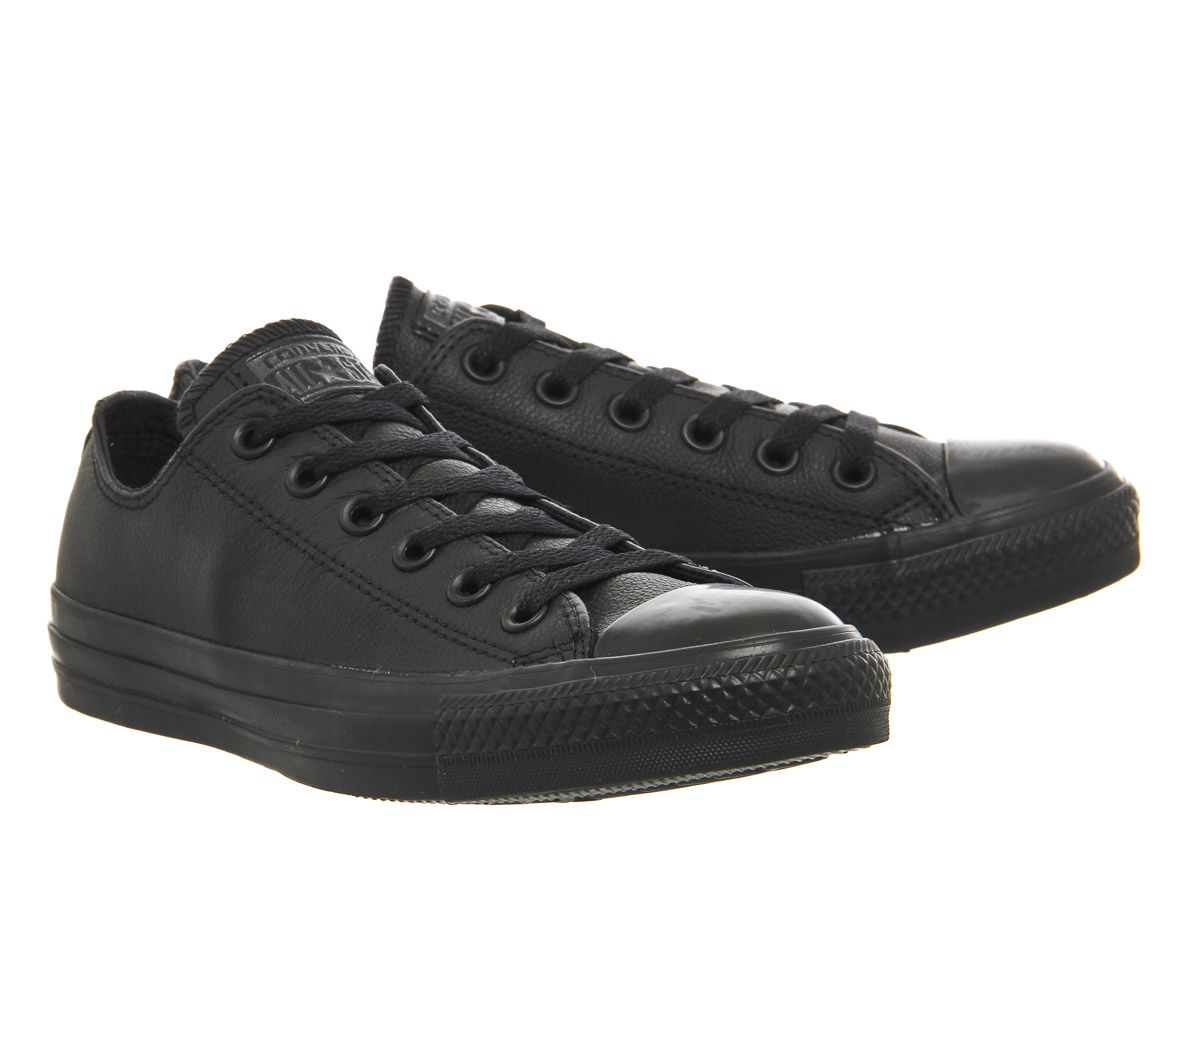 24b1fea23a0 Womens Converse All Star Low Leather Flash Black Mono Trainers Shoes ...